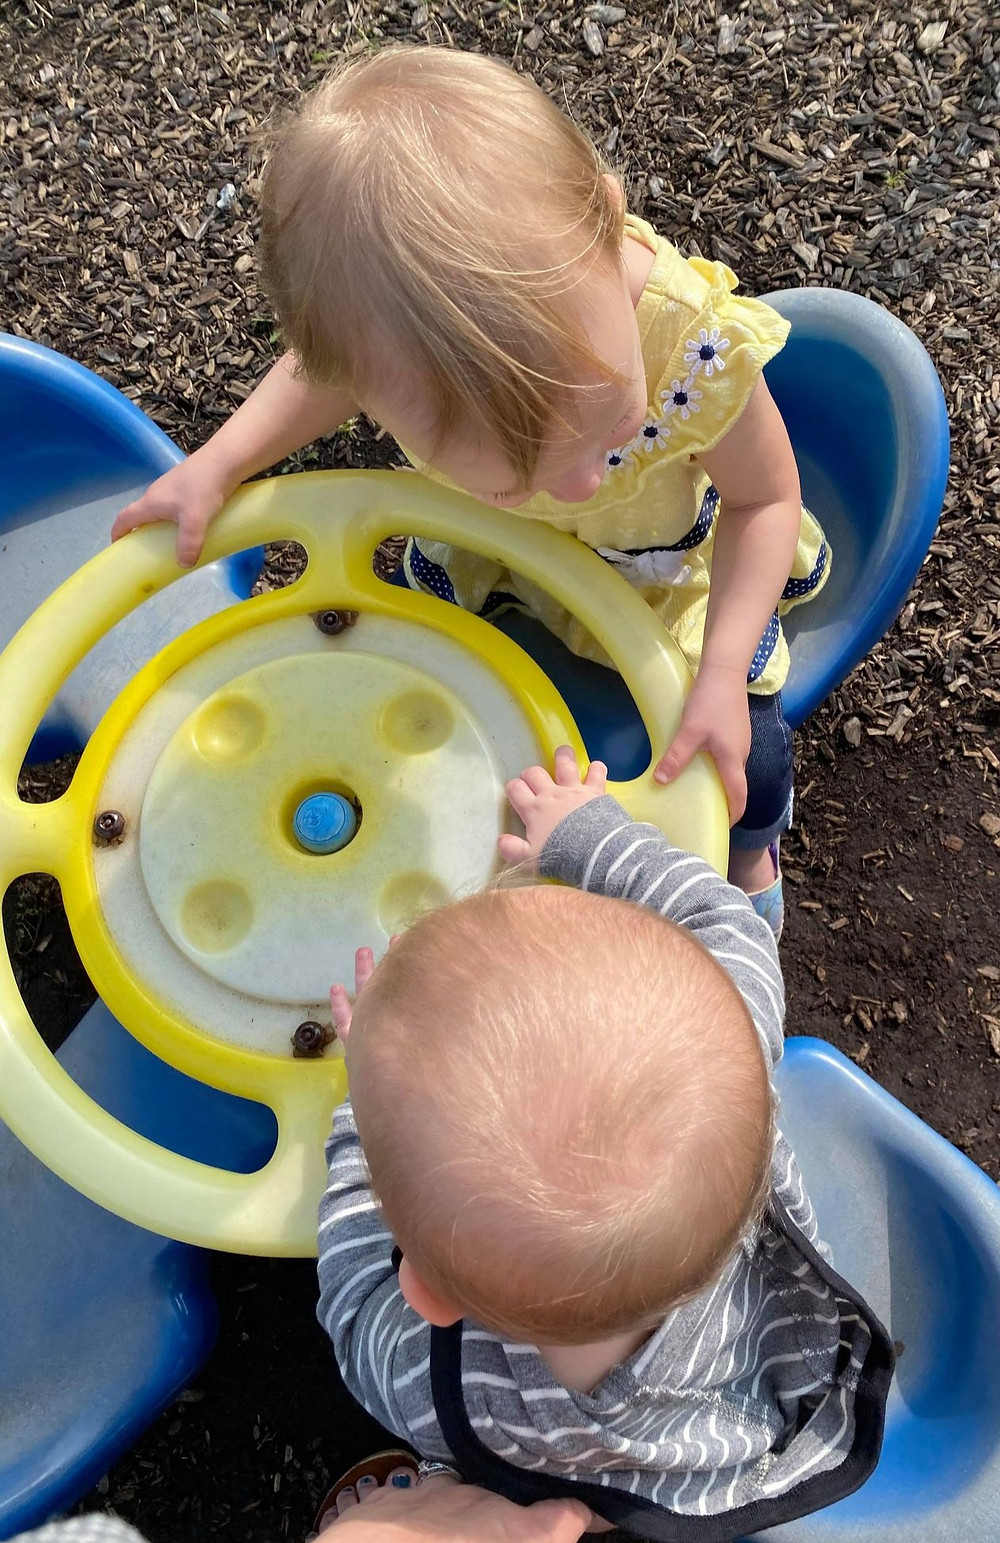 toddlers, playing, camping, travel, family, jellystone